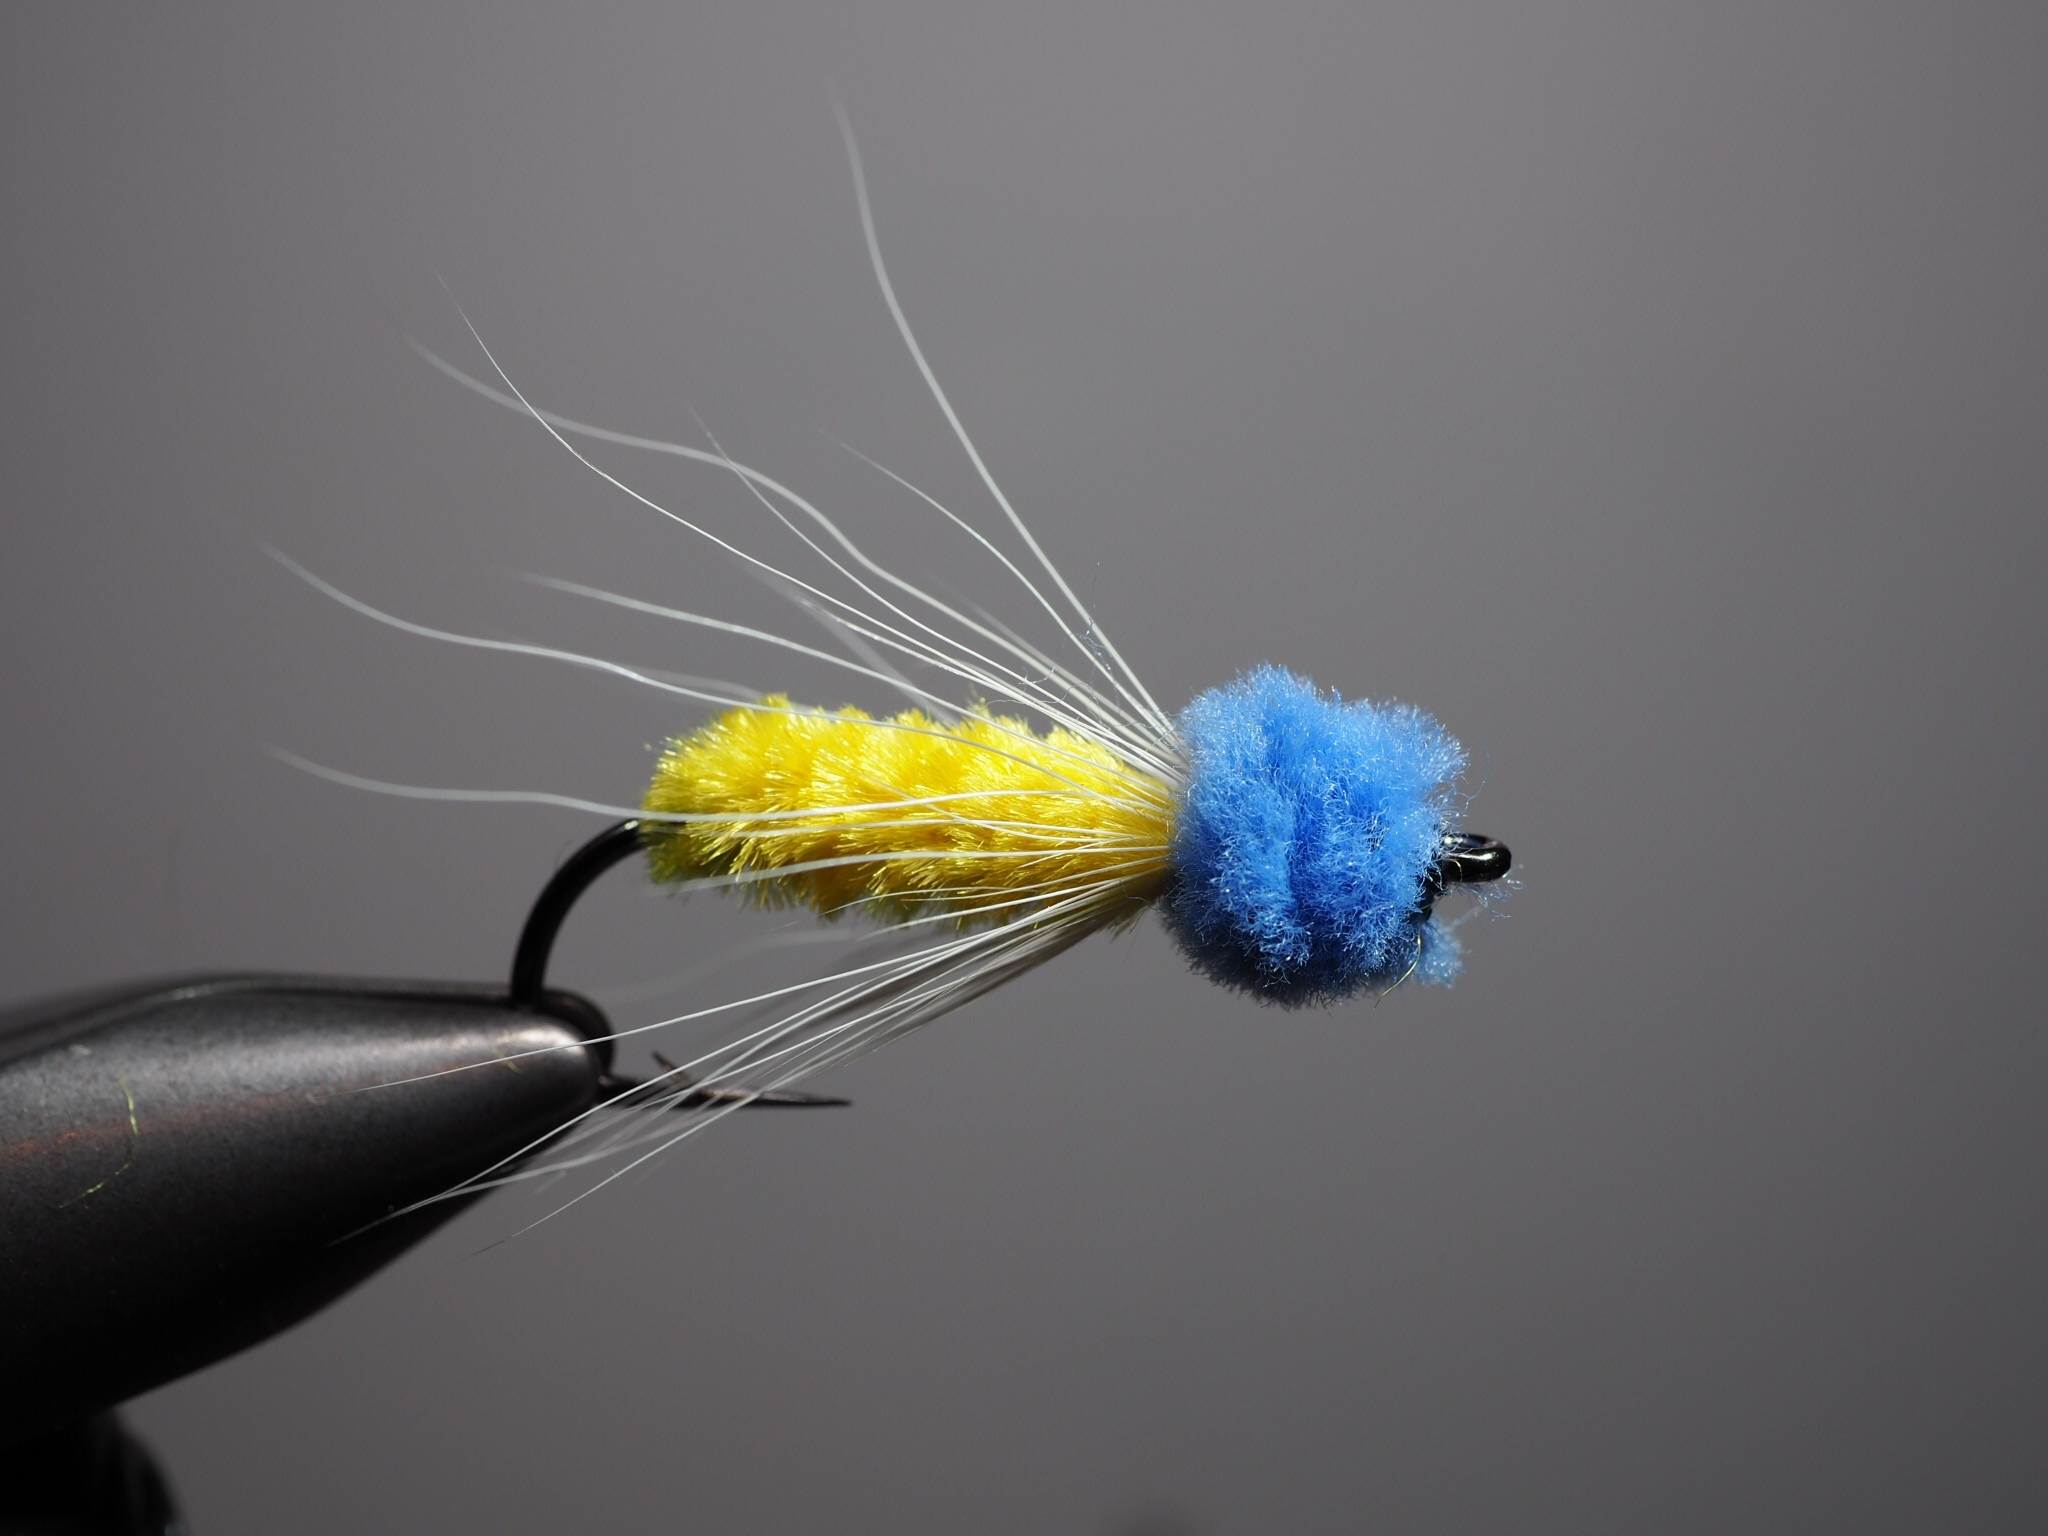 TWO MCGINTY FLIES TROUT BLUEGILL SIZE 10 FLY FISHING